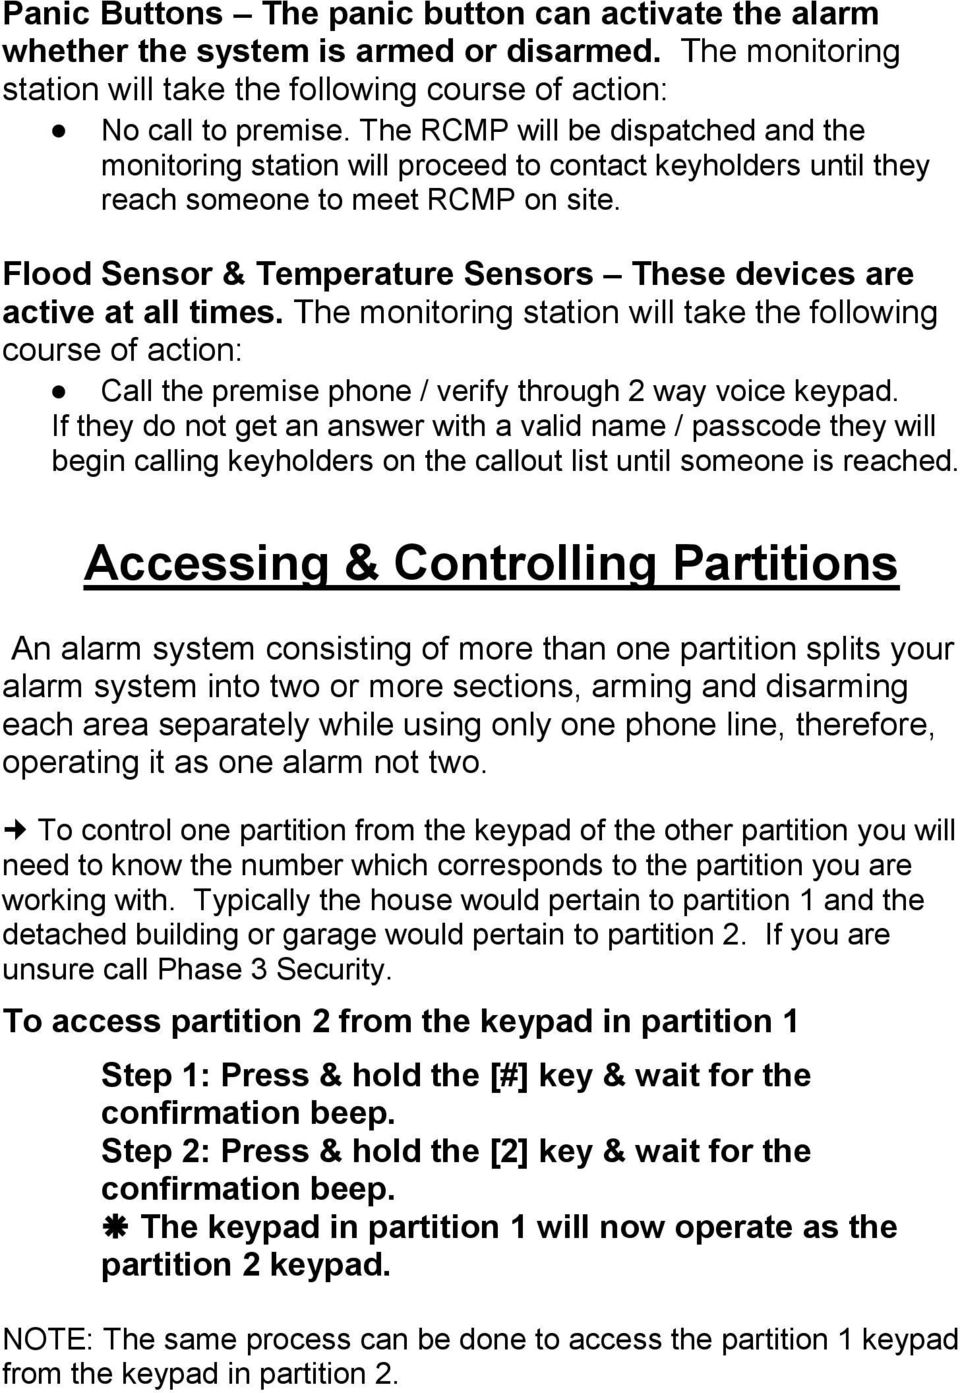 Flood Sensor & Temperature Sensors These devices are active at all times. The monitoring station will take the following course of action: Call the premise phone / verify through 2 way voice keypad.